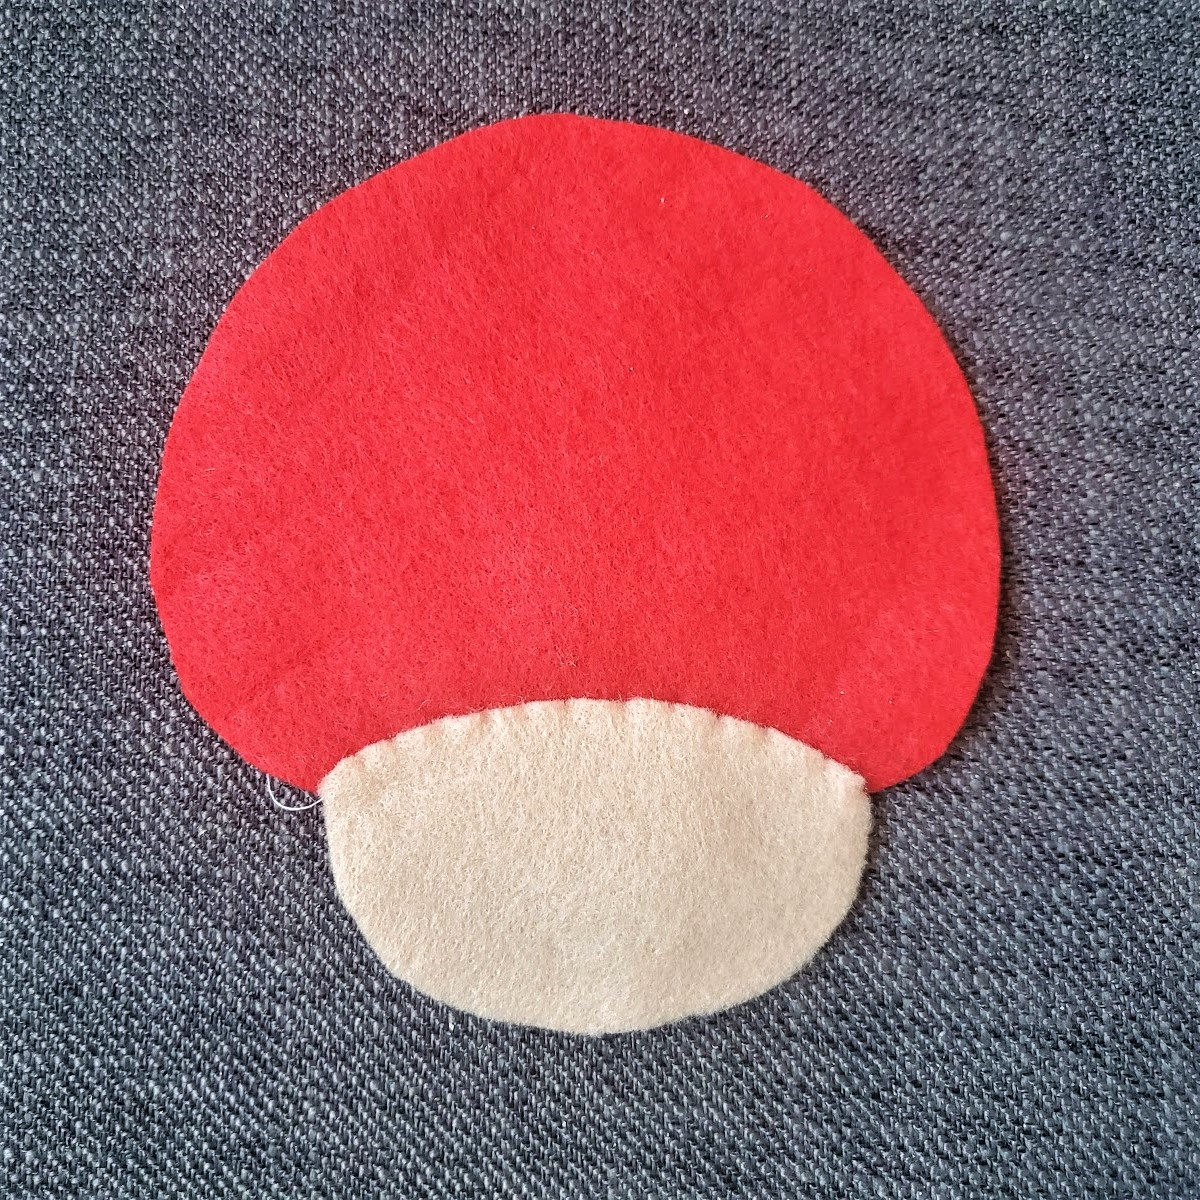 Image of the blank tan face piece and blank red mushroom back sewn together